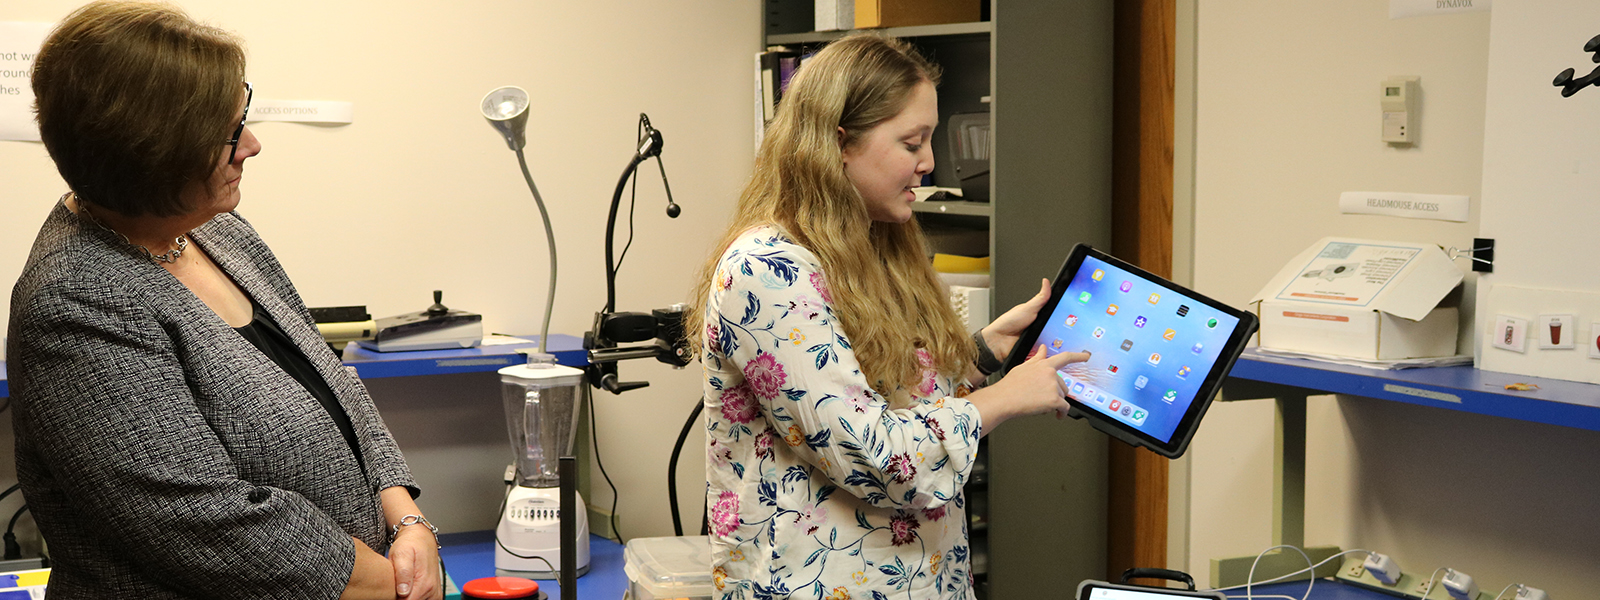 Kelly Woodworth, a speech-language pathology graduate student, demonstrates how an iPad might be used as an AAC device.